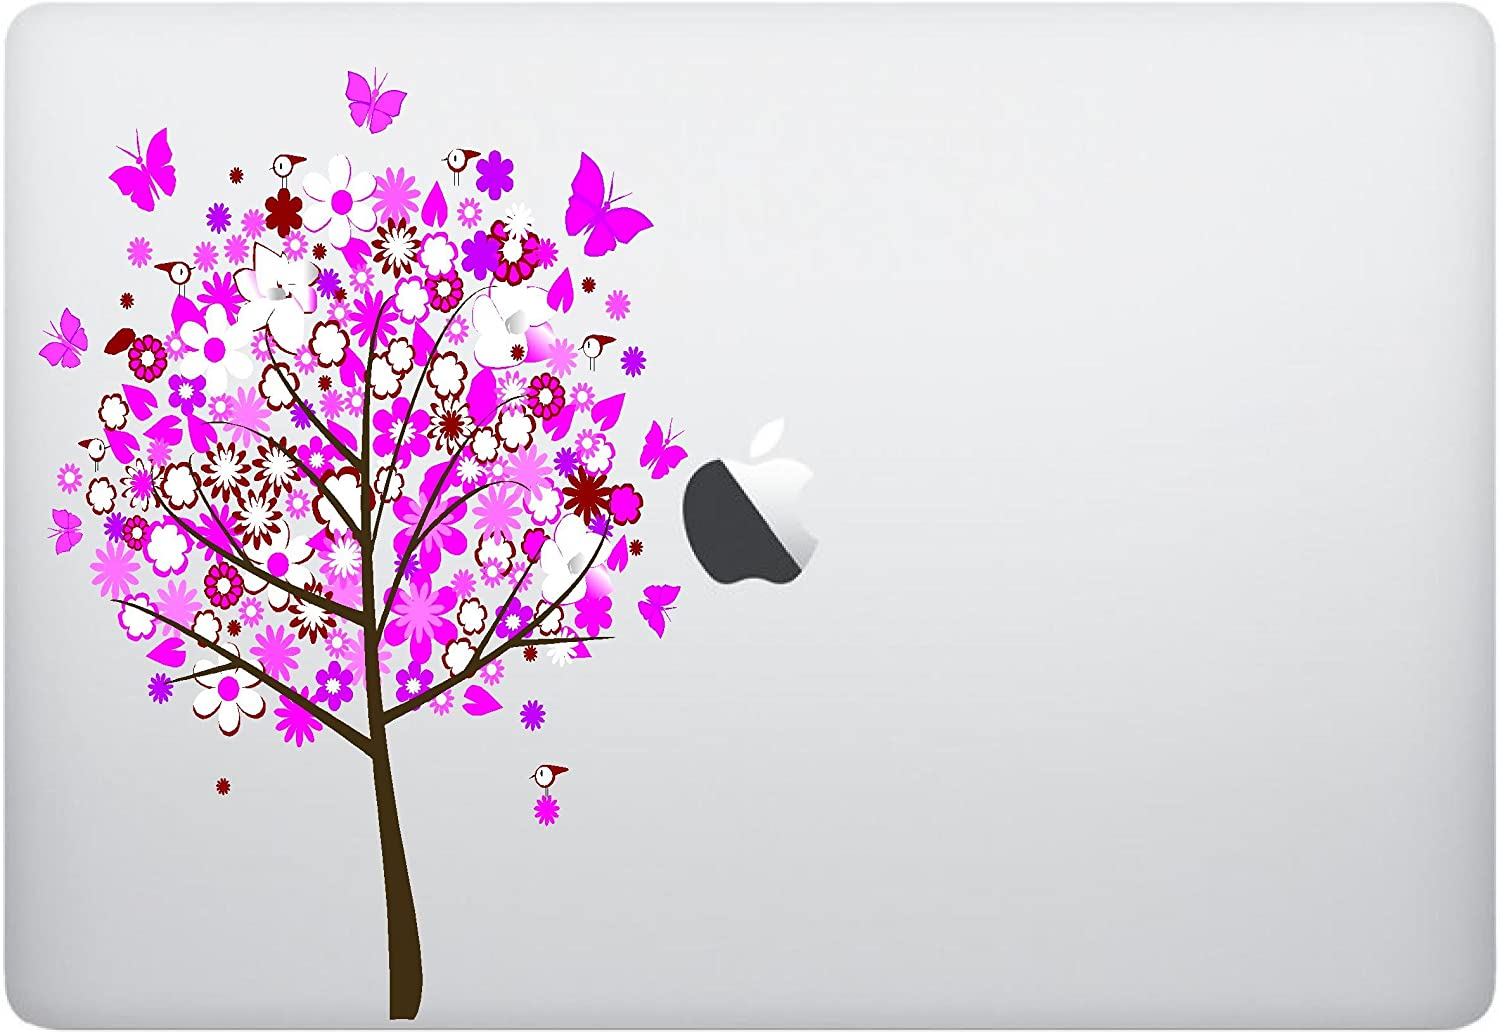 Laptop Sticker Decal - Tree with Birds and Butterflies - Skins Stickers